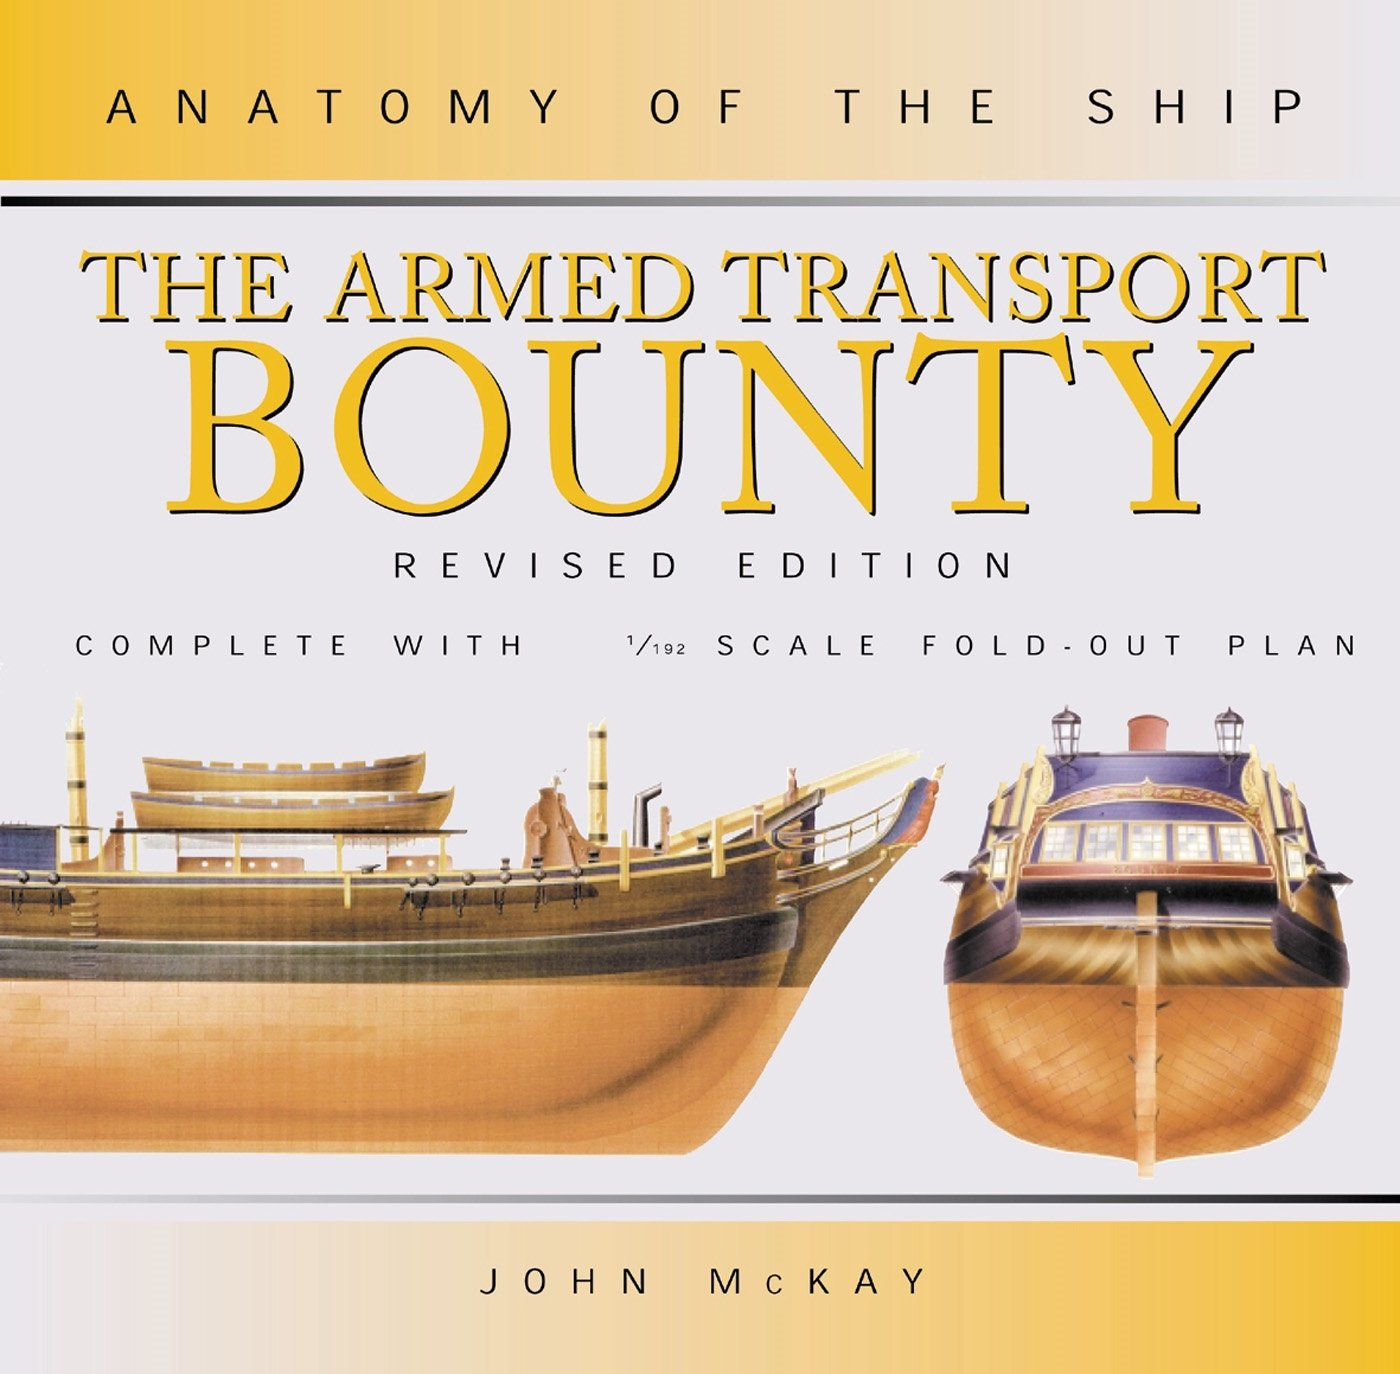 HMS BOUNTY REVISED EDITION (Anatomy of the Ship)